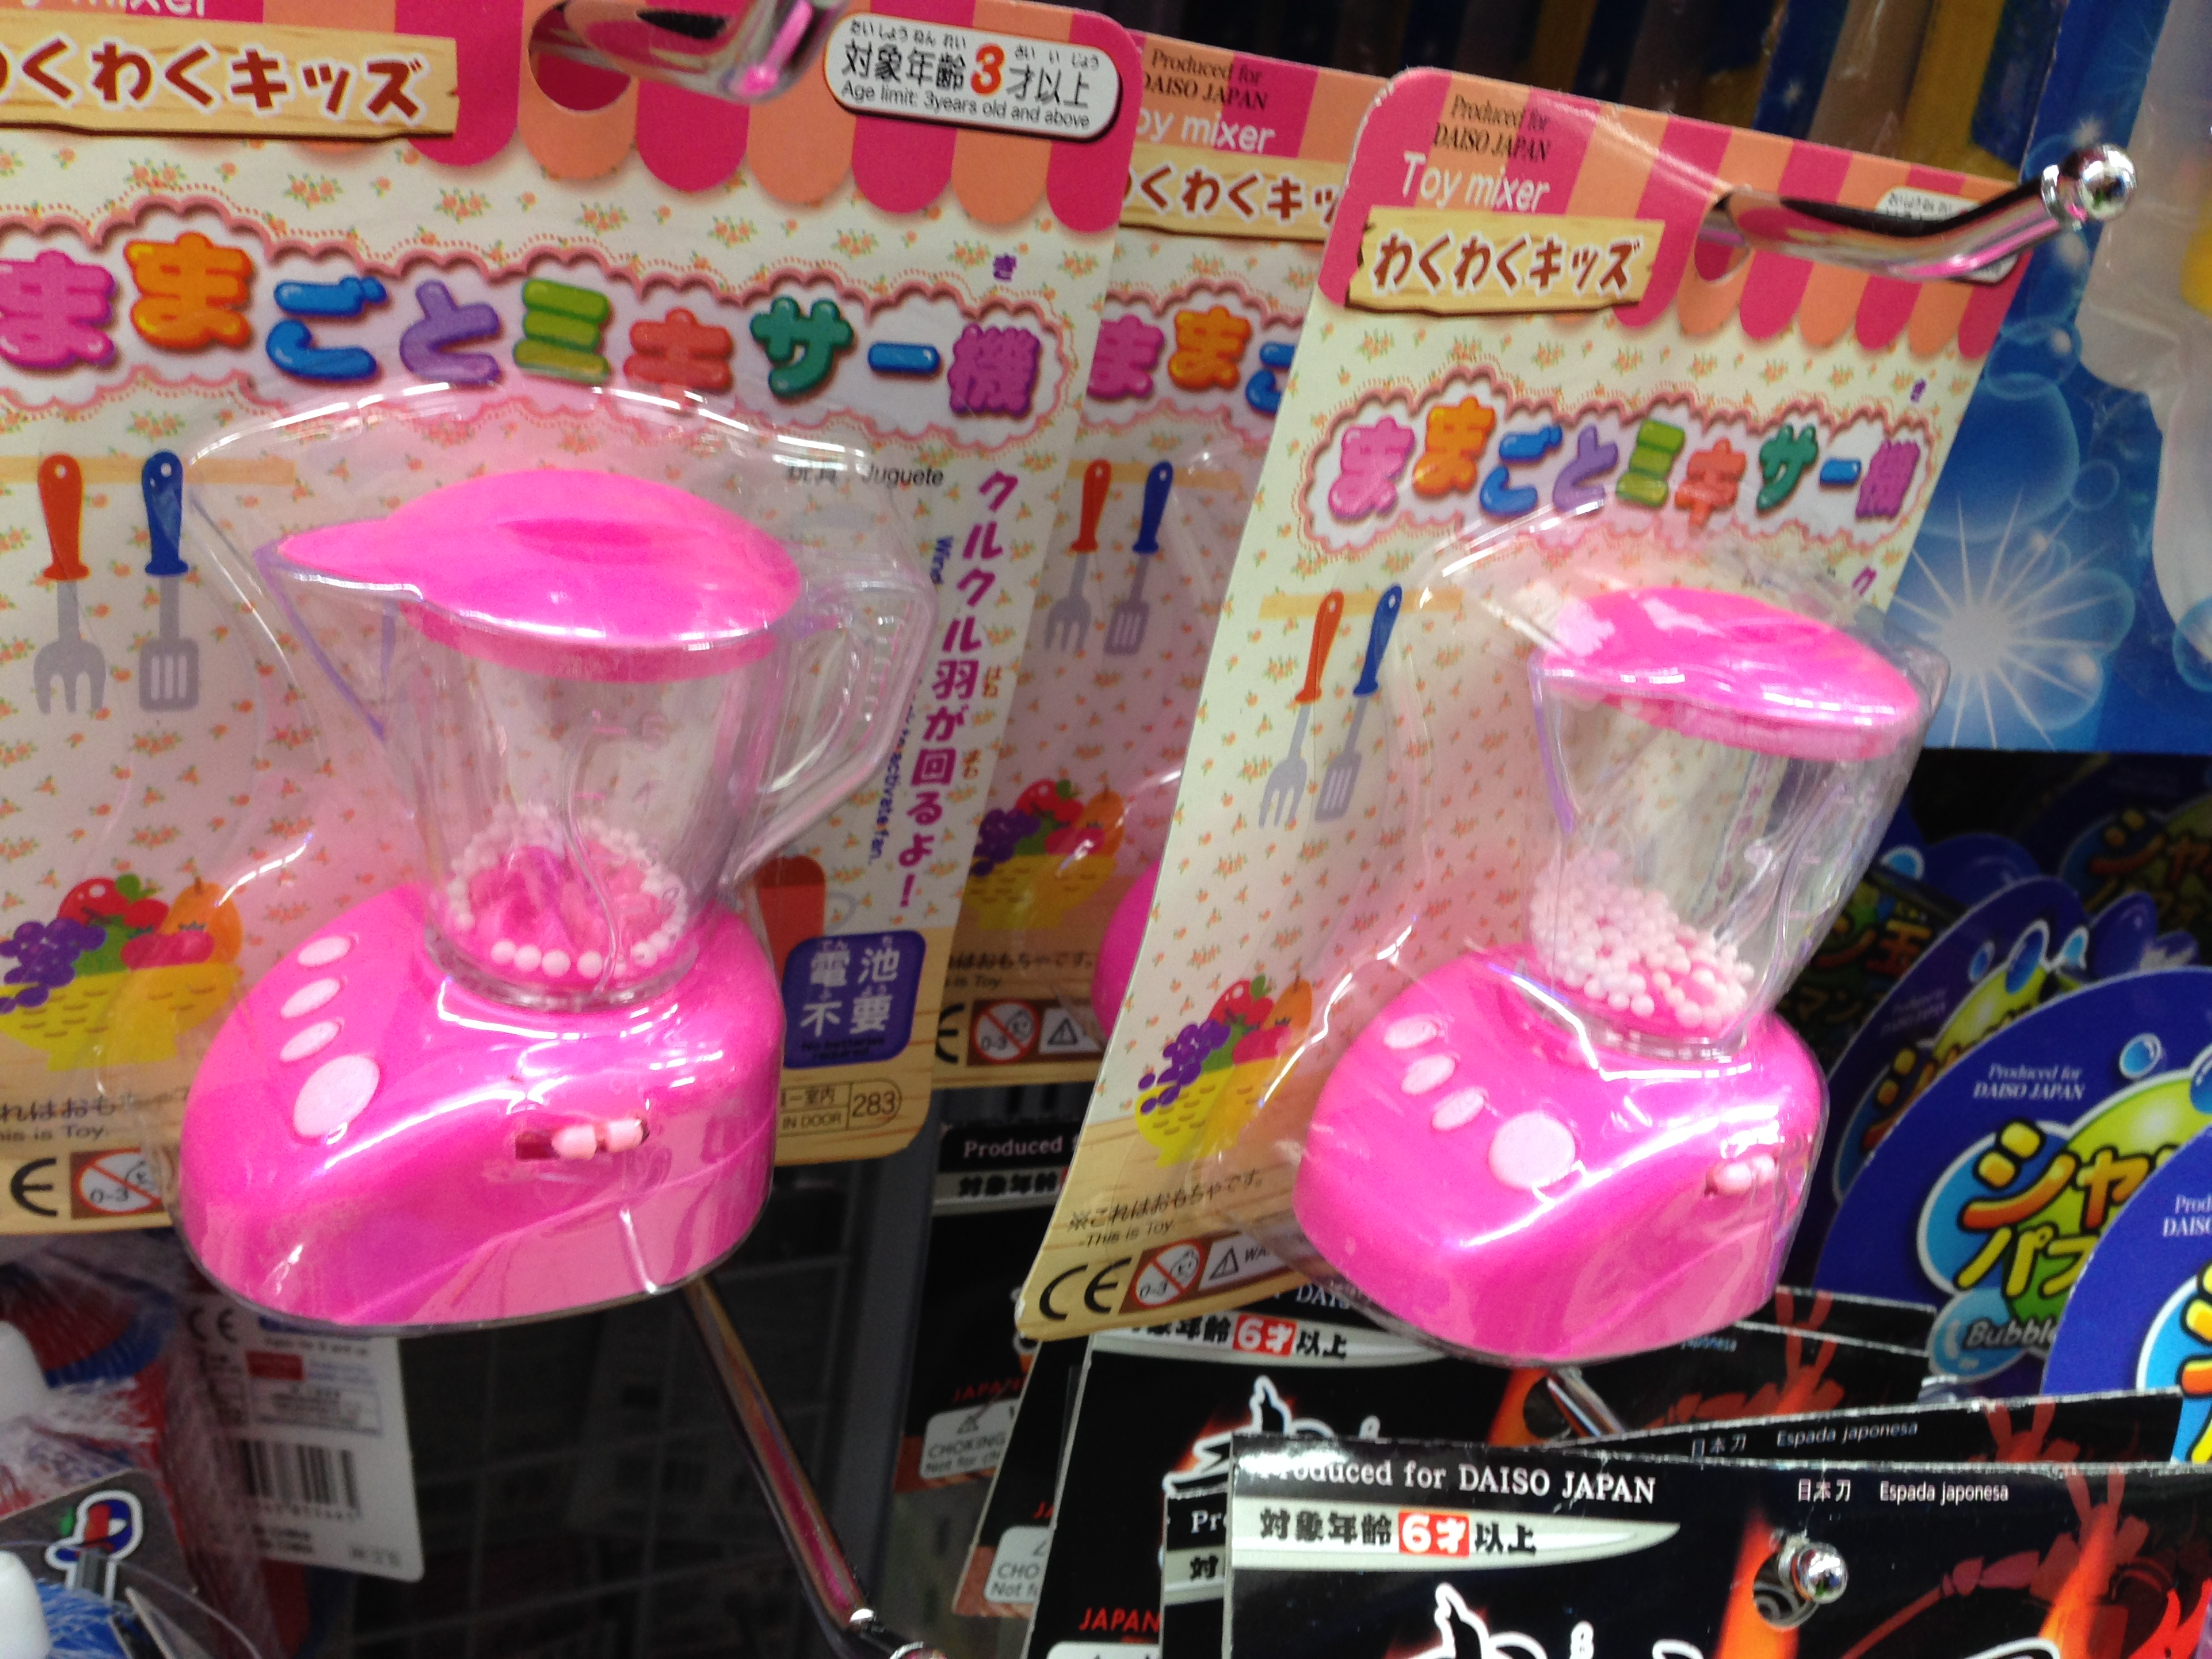 Inexplicably miniaturized, just like many kawaii Japanese items.